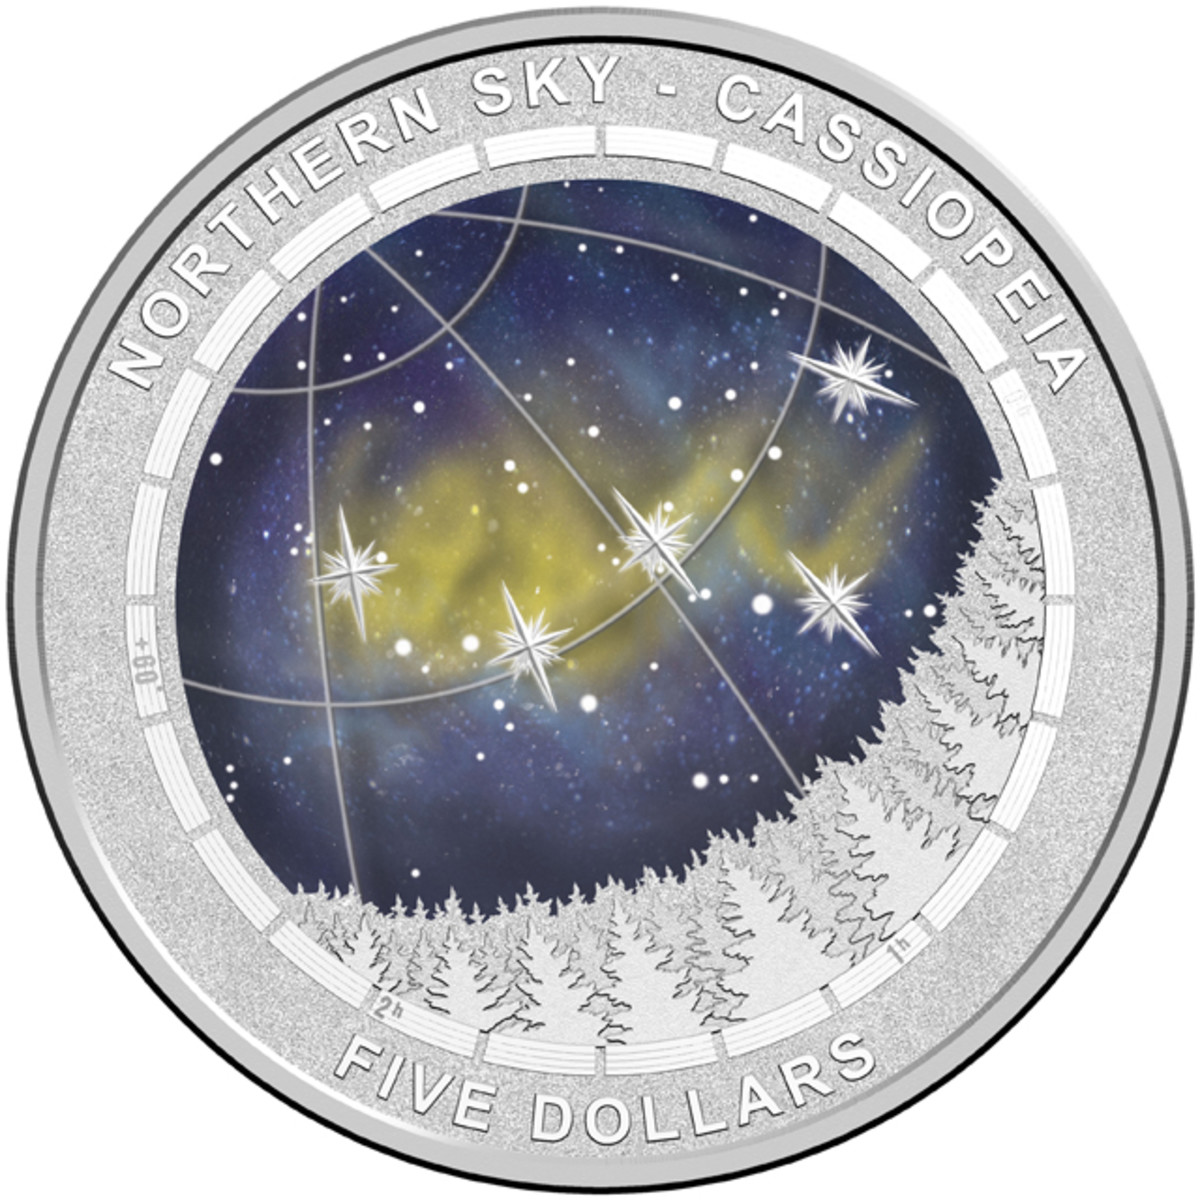 Reverse of RAM's first, domed, Northern Night Sky Series $5.